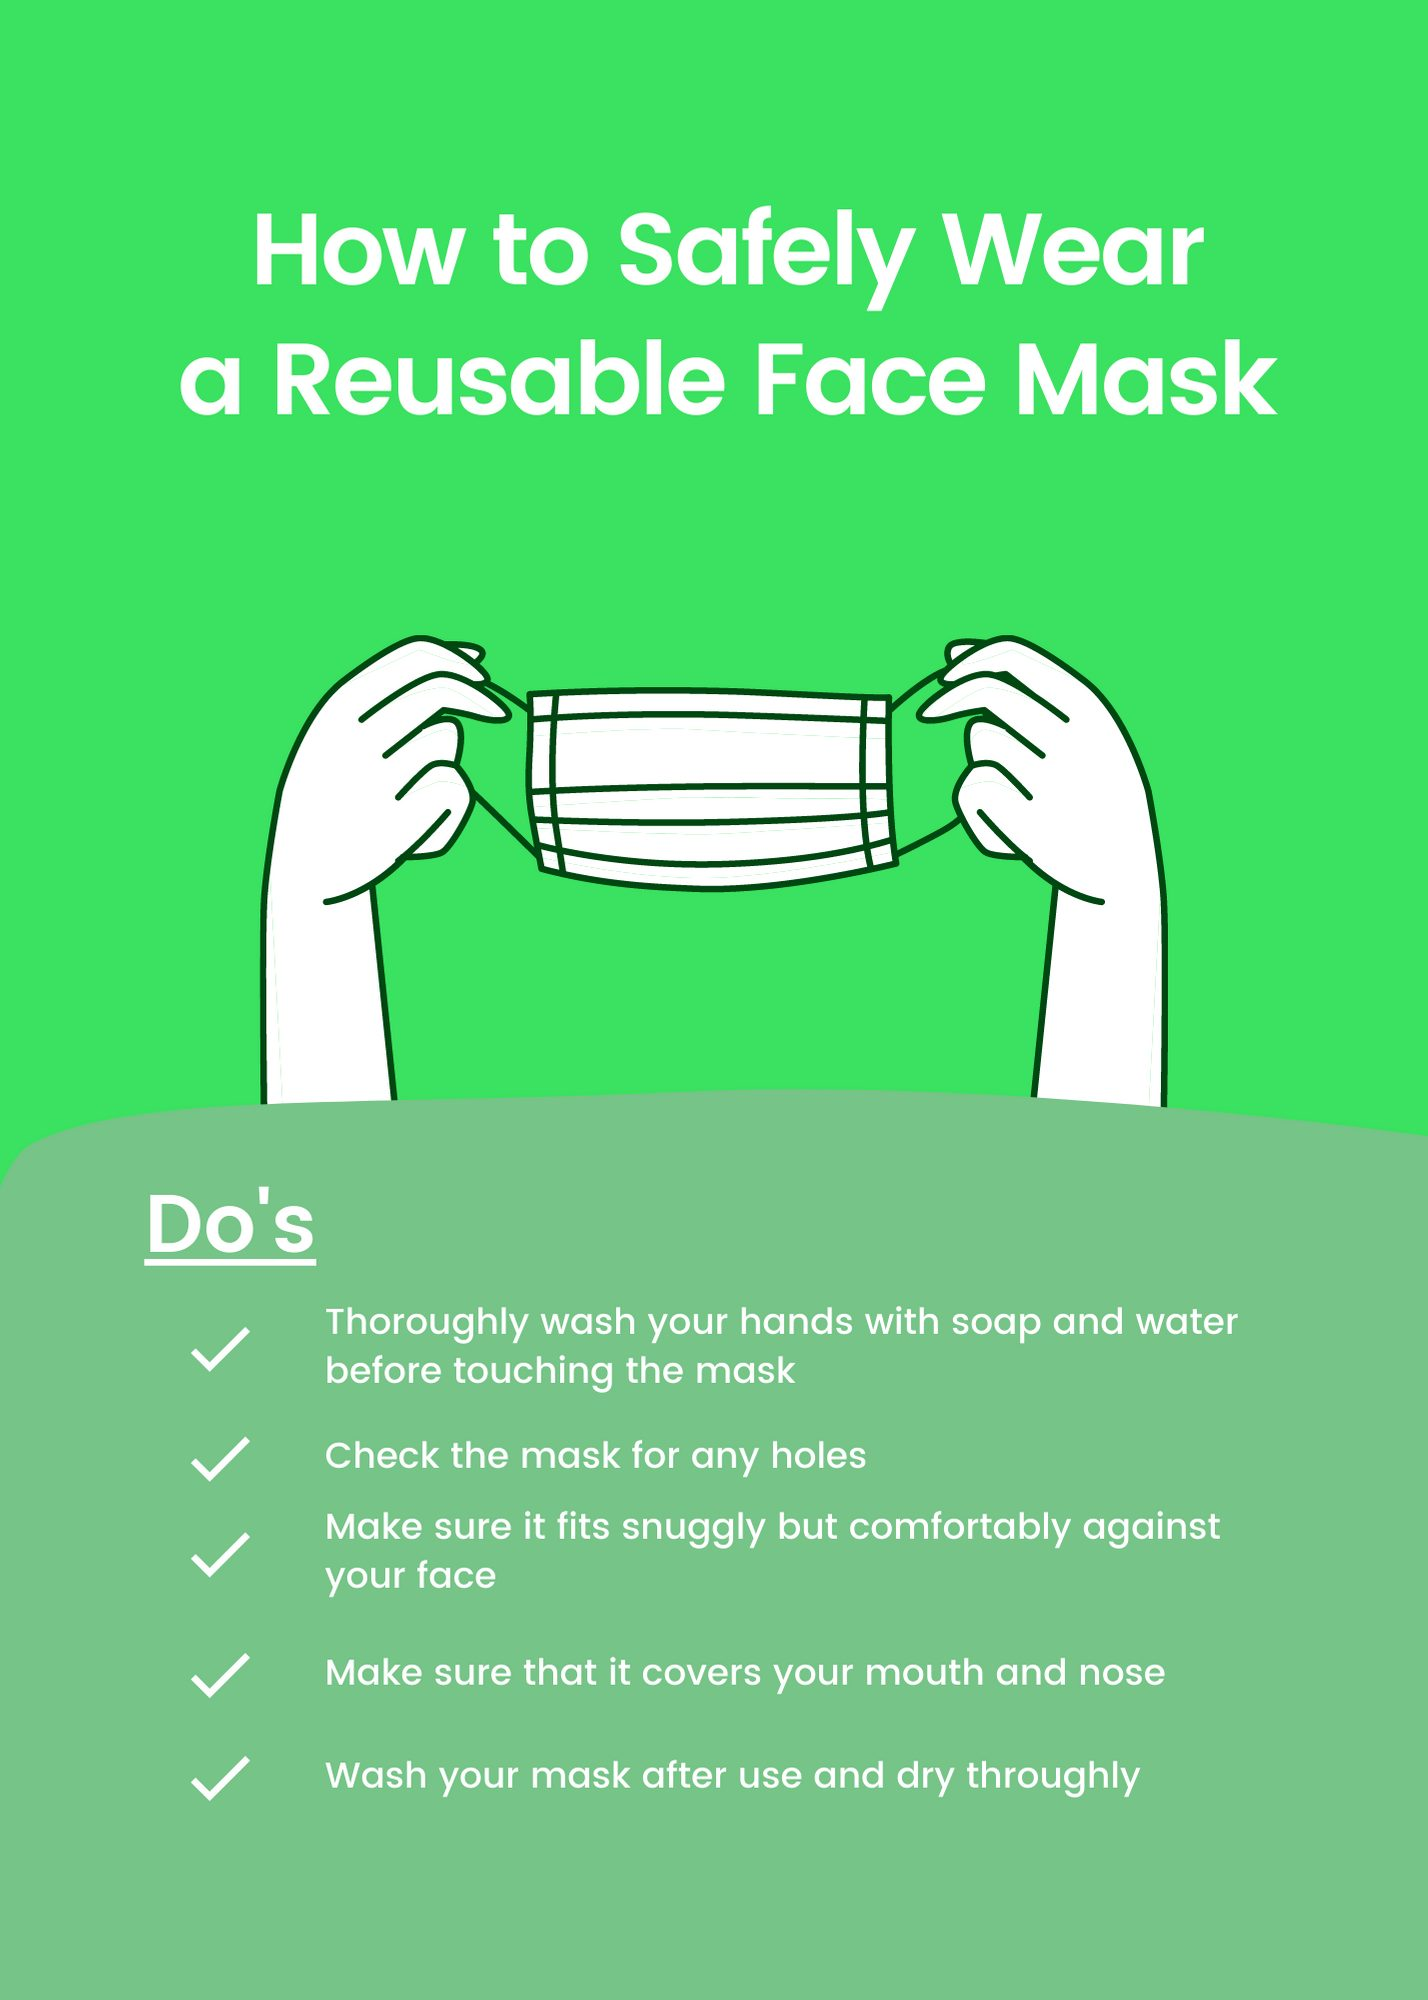 safely wear a reusable face mask